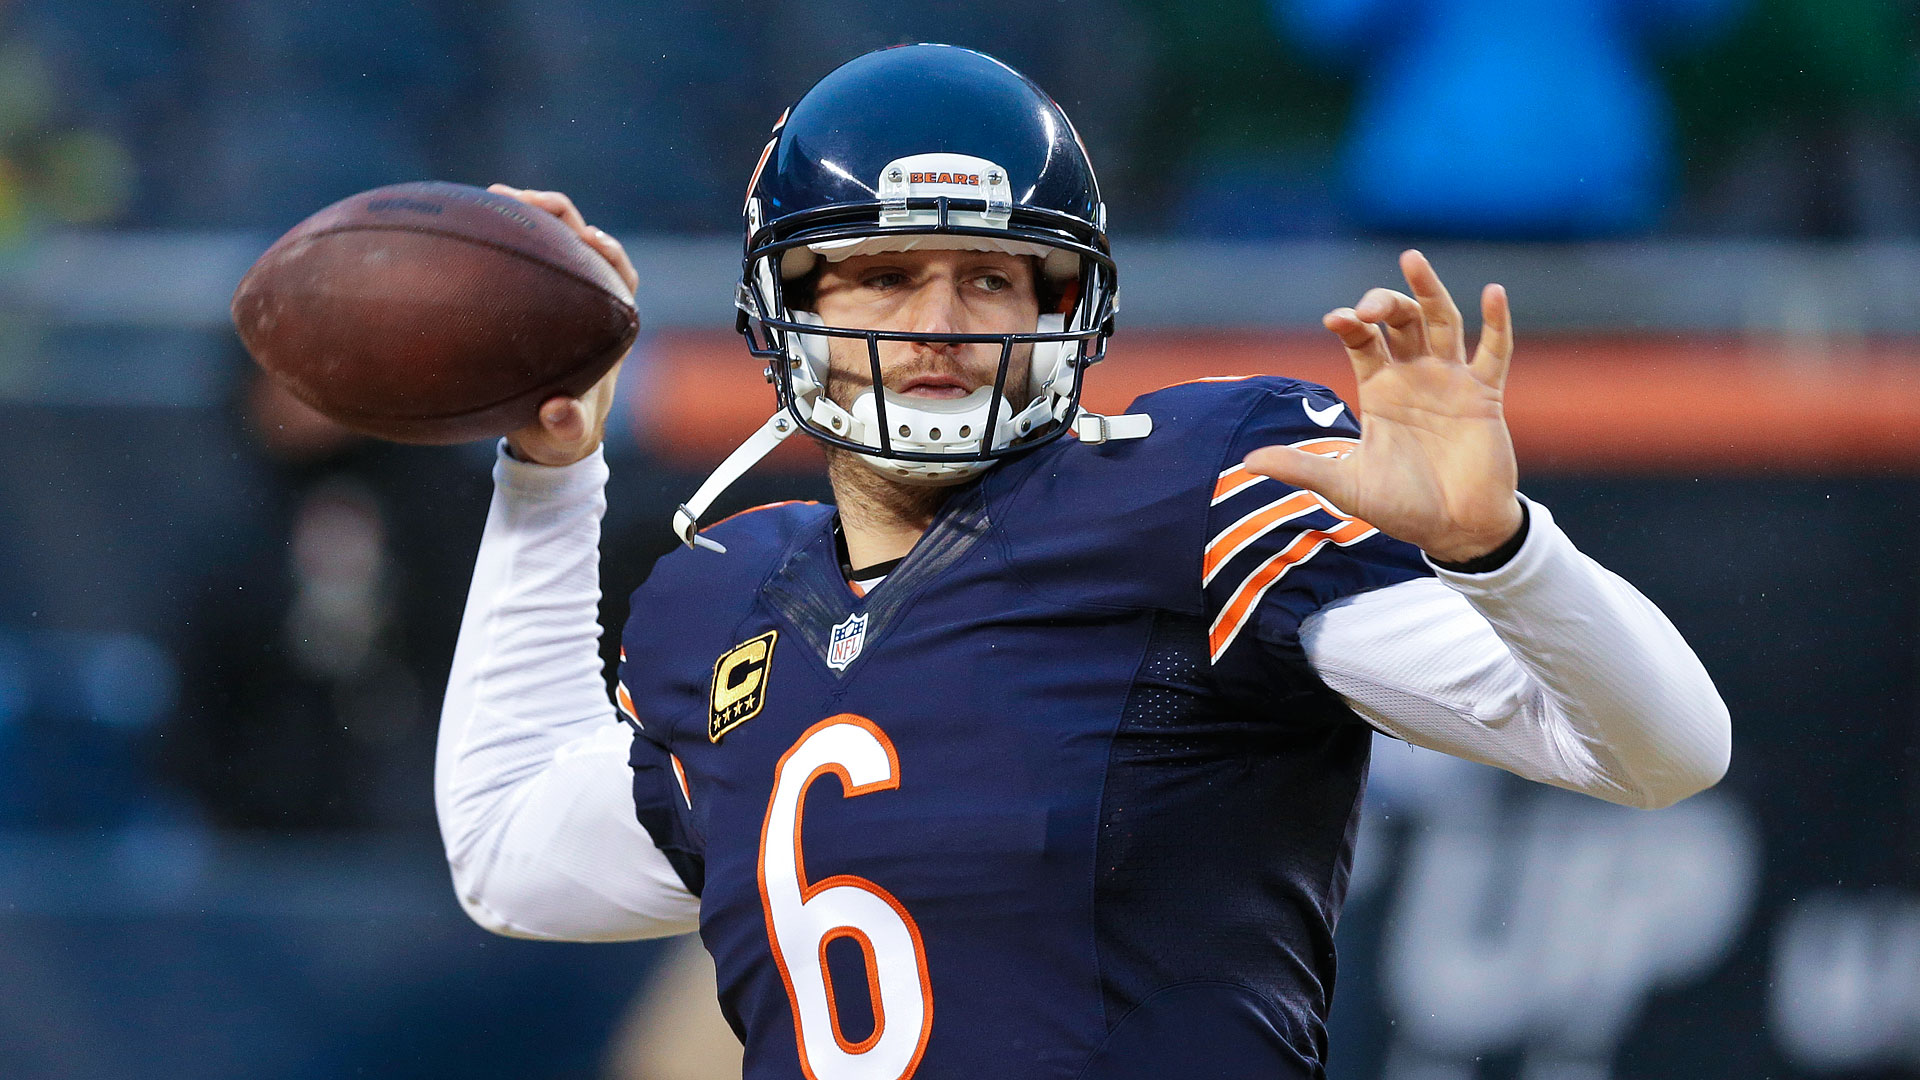 Jay Cutler Wants To Play For Bears But Will They Keep Him